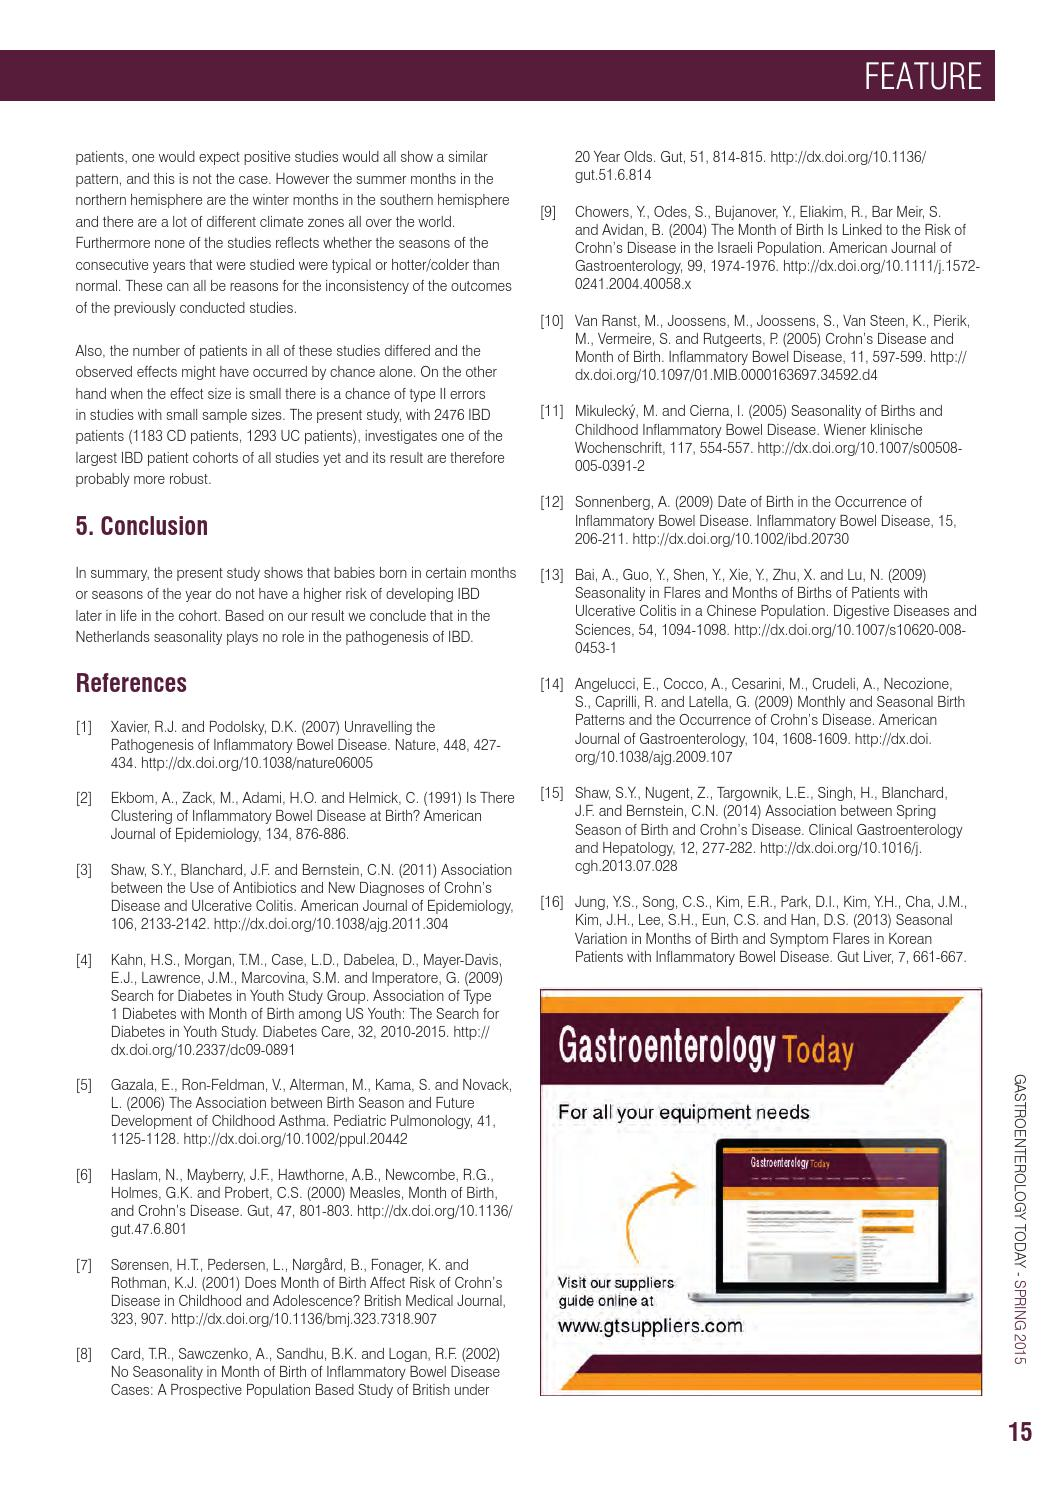 Gastroenterology Today - Spring 2015 by Media Publishing